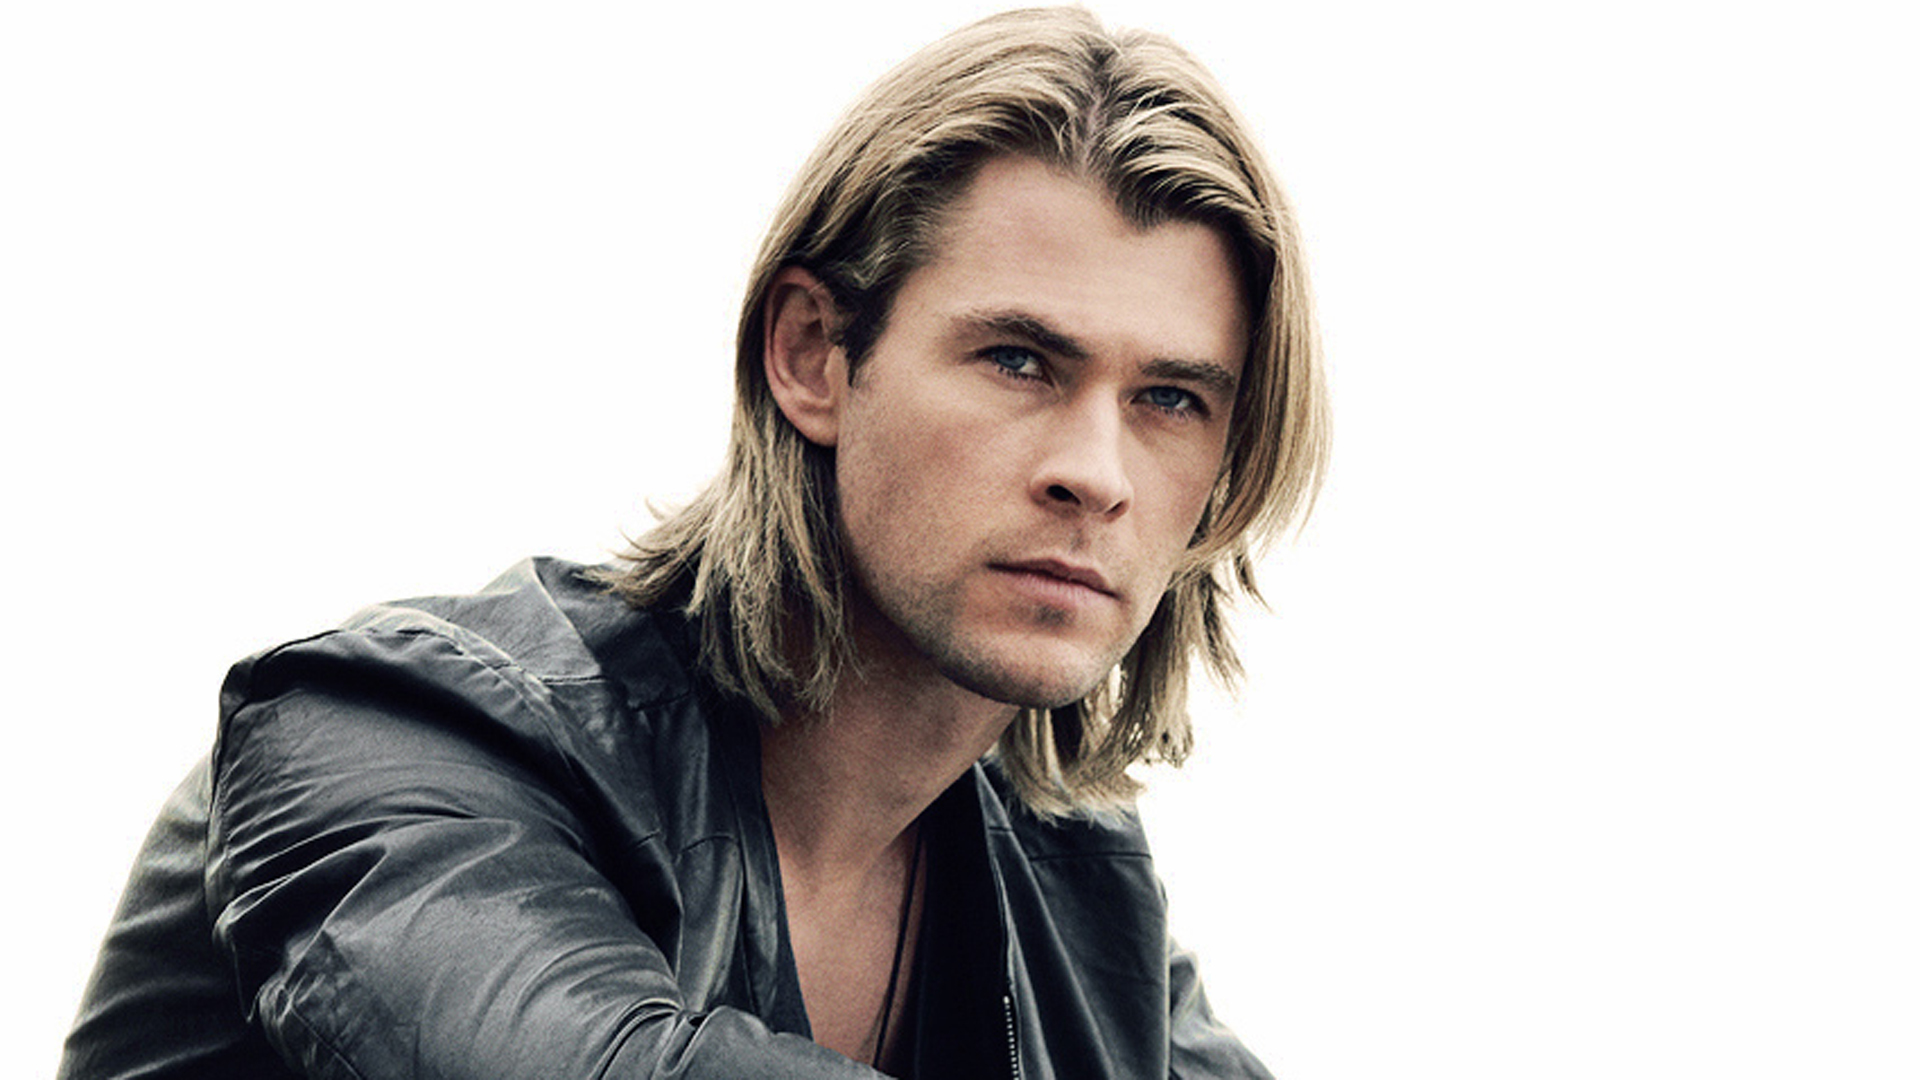 HD Wallpapers Chris Hemsworth high quality and definition